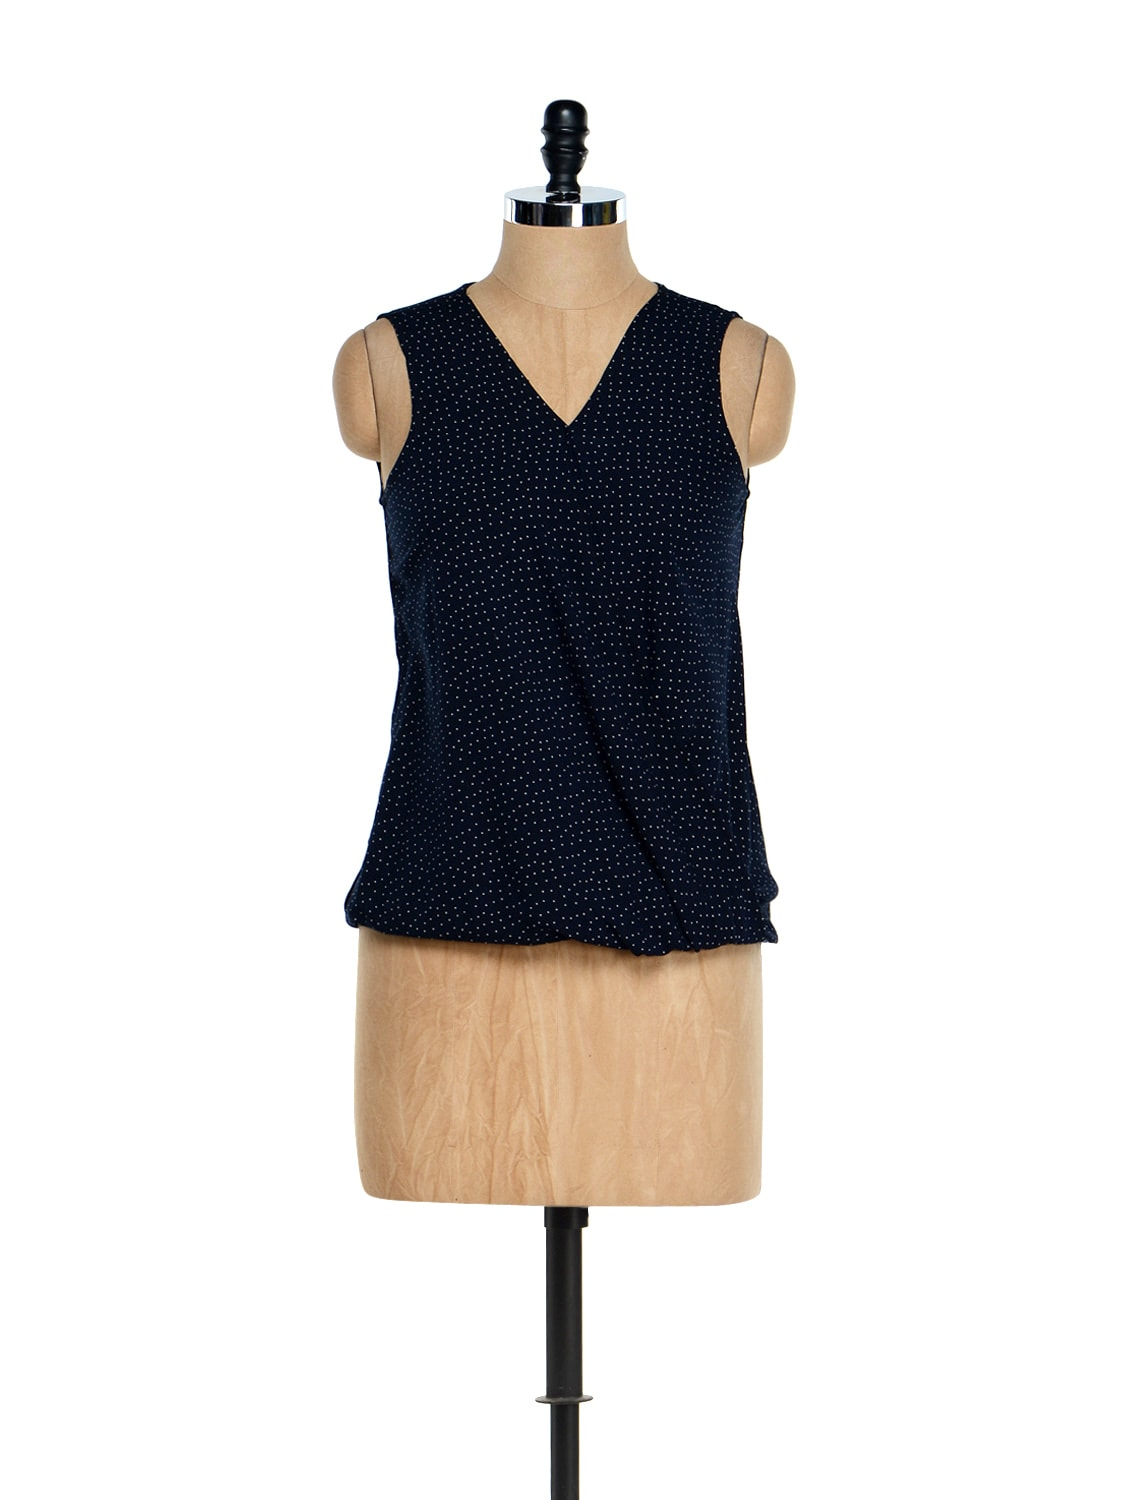 Navy Blue Polka Dotted Gathered Top - Besiva